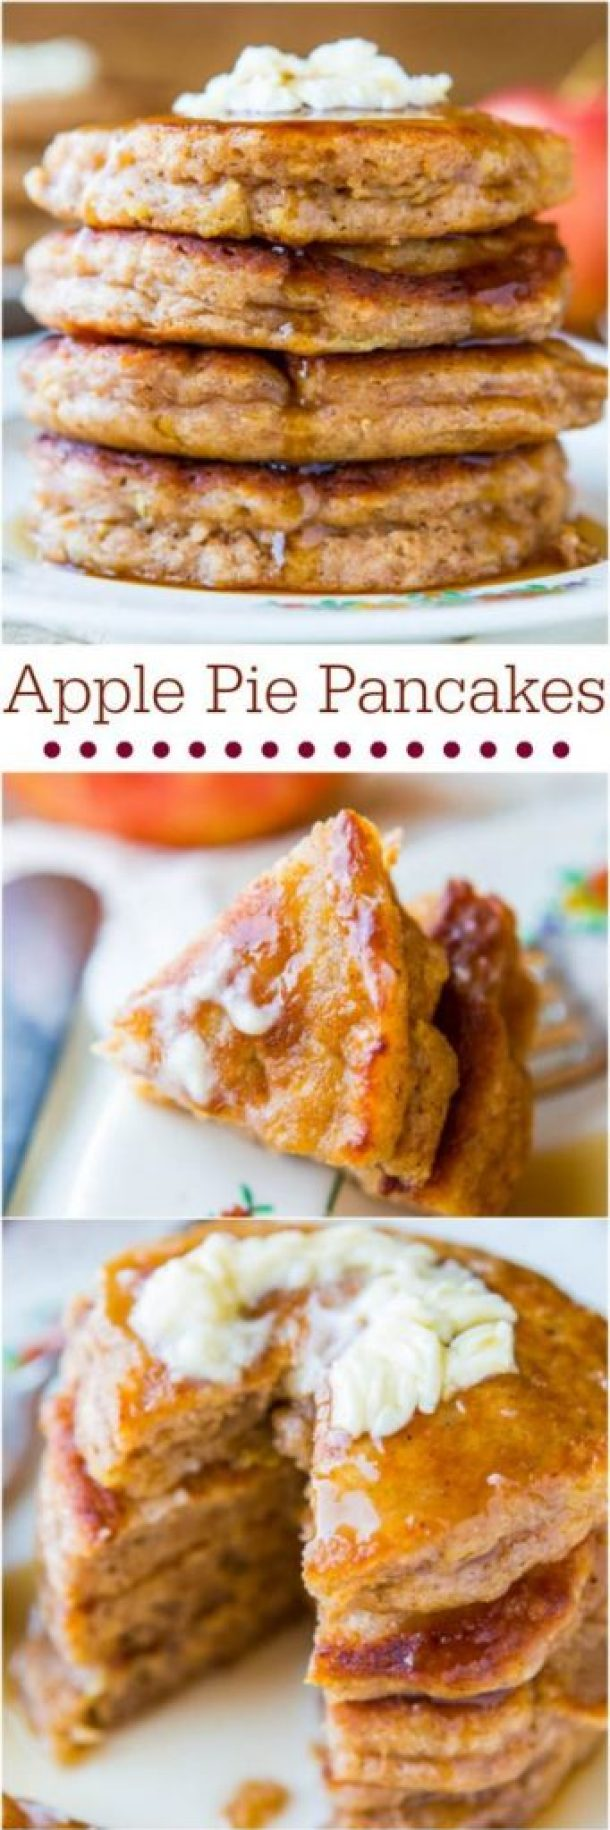 Apple Pie Pancakes with Vanilla Maple Syrup Recipe | Averie Cooks - Apple Recipes